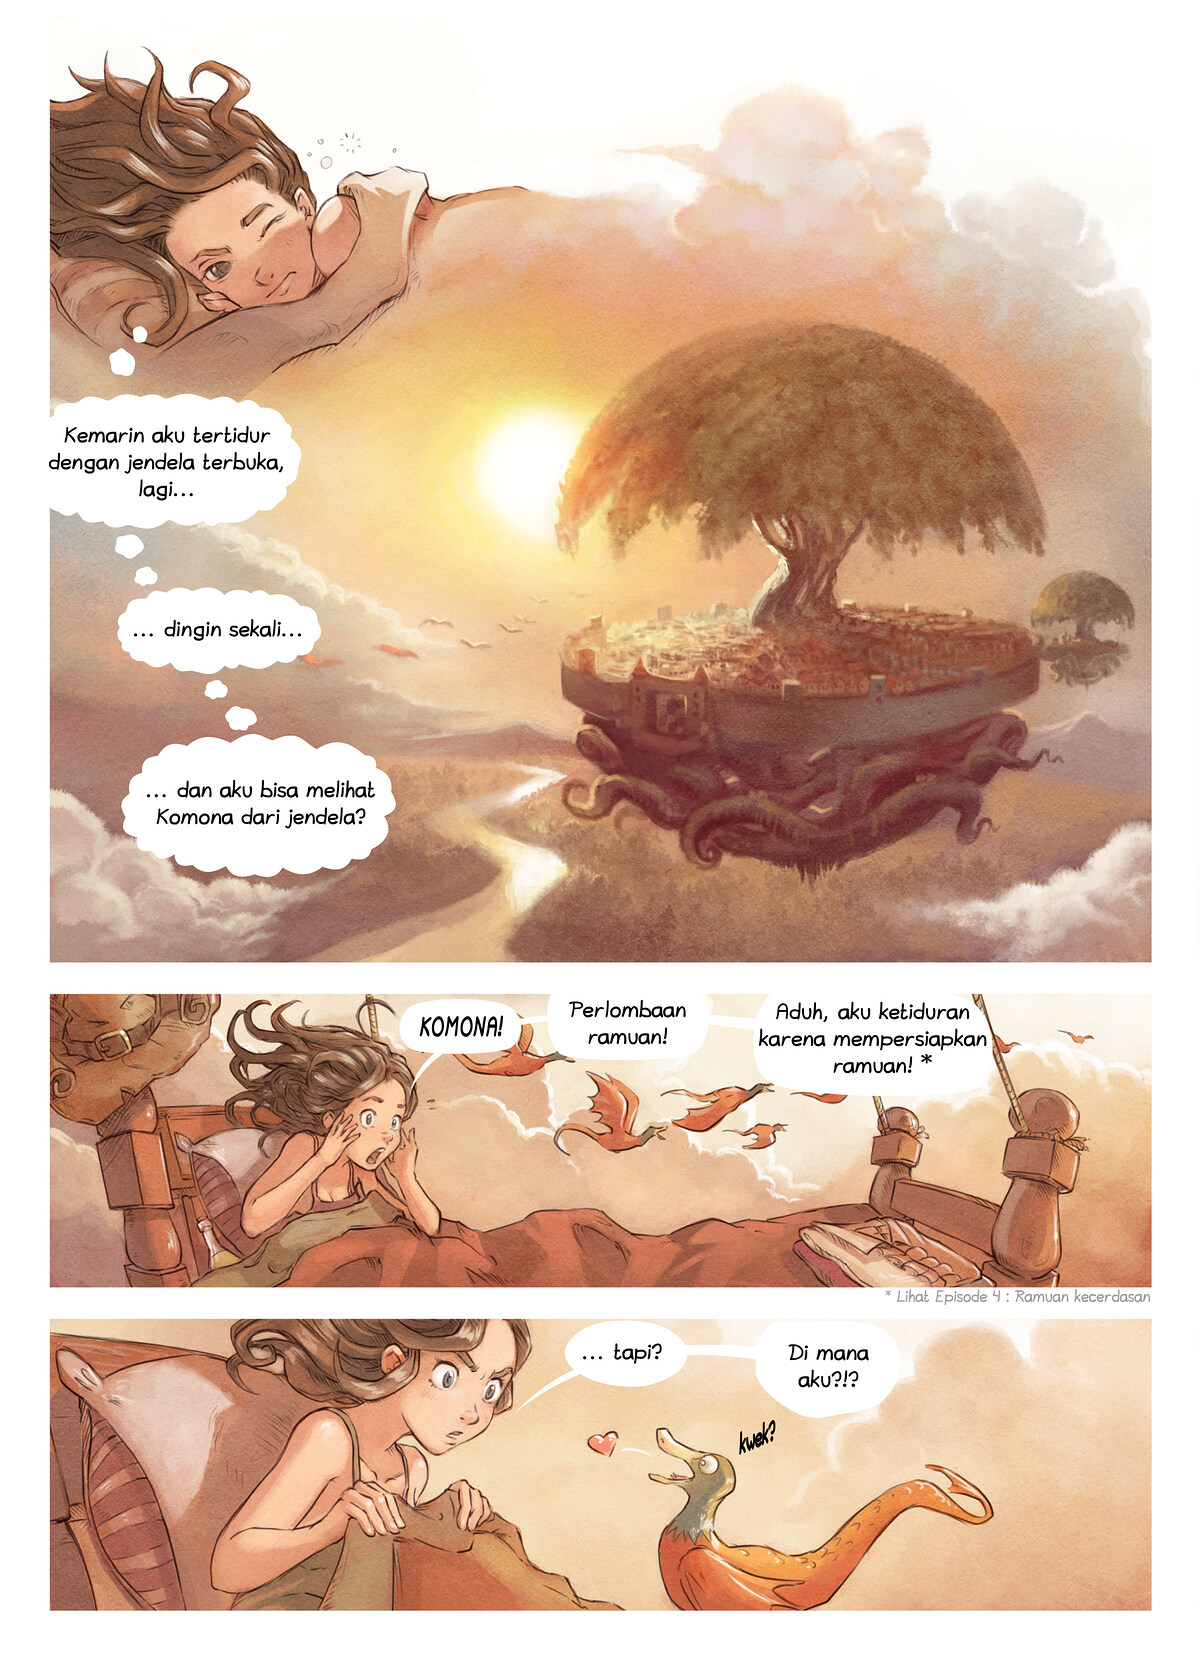 A webcomic page of Pepper&Carrot, episode 6 [id], halaman 1